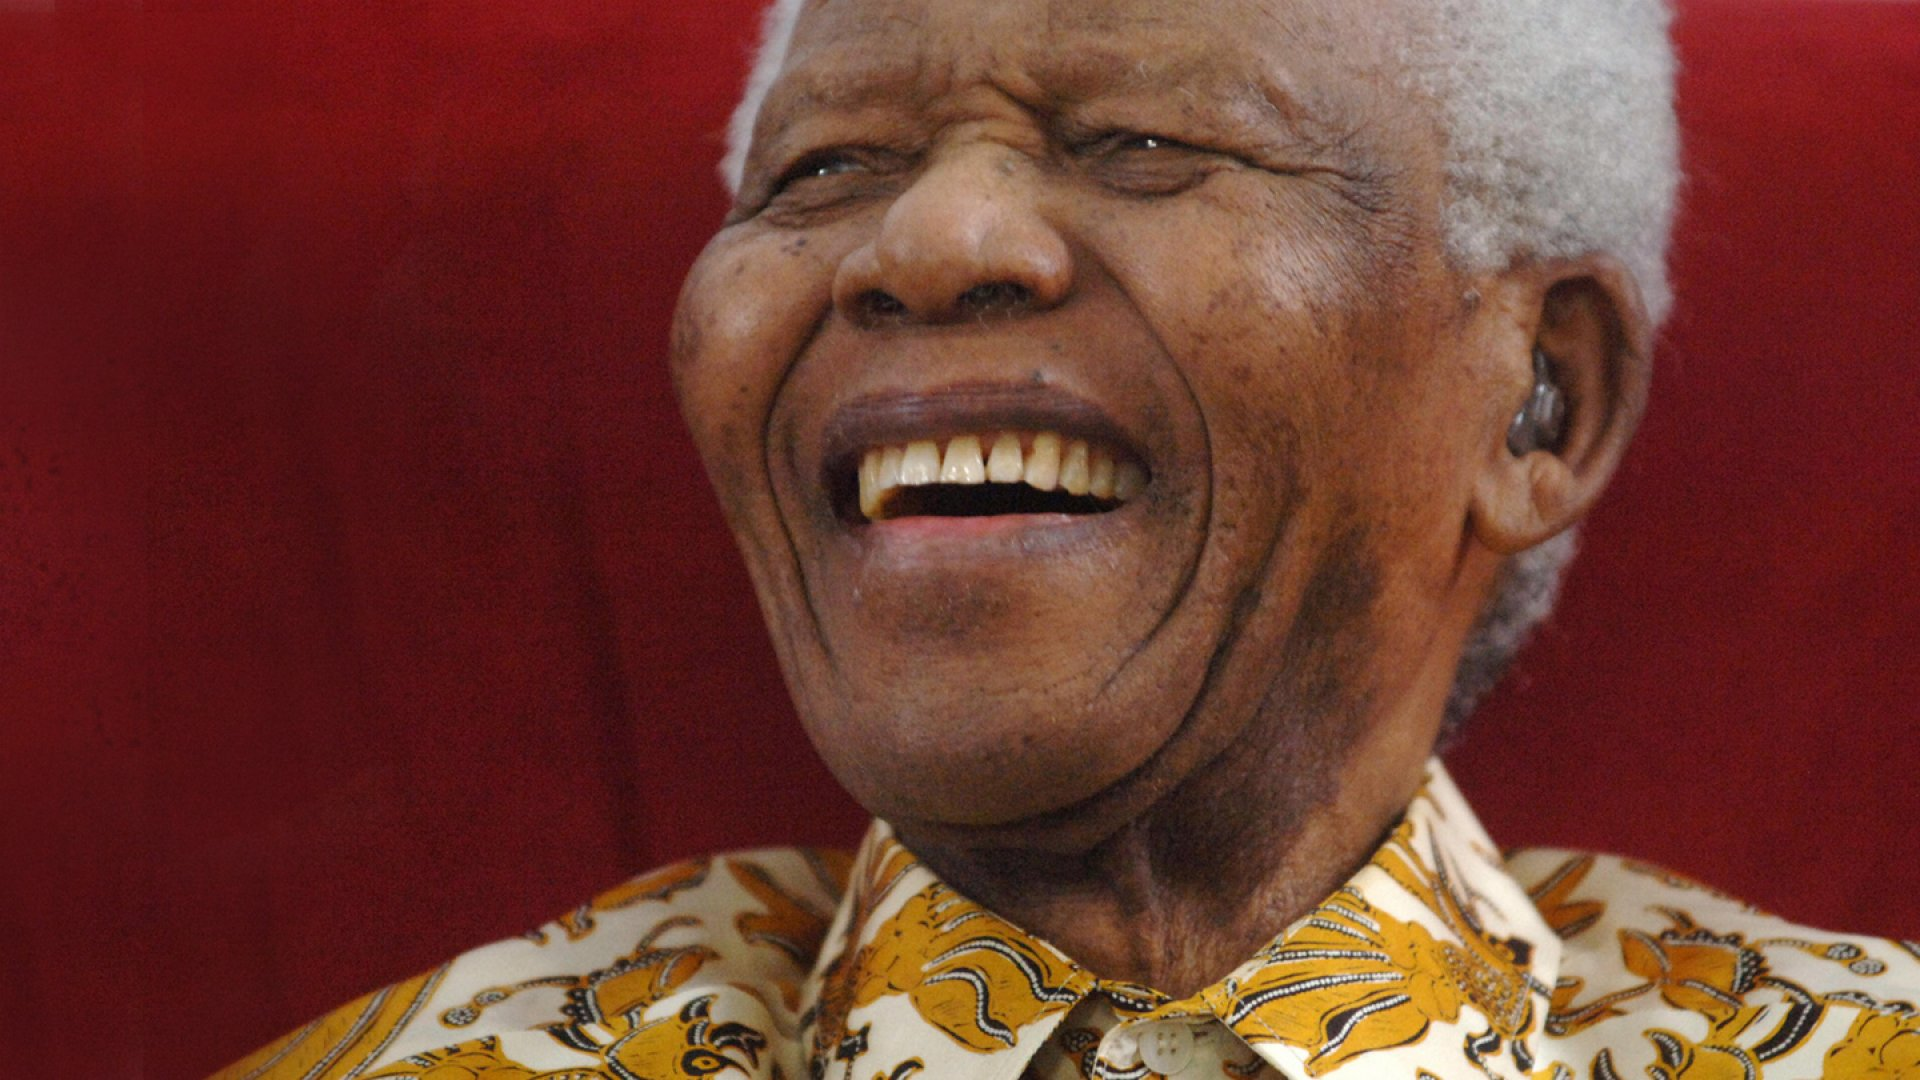 Mandela at a 90th birthday celebration in Johannesburg